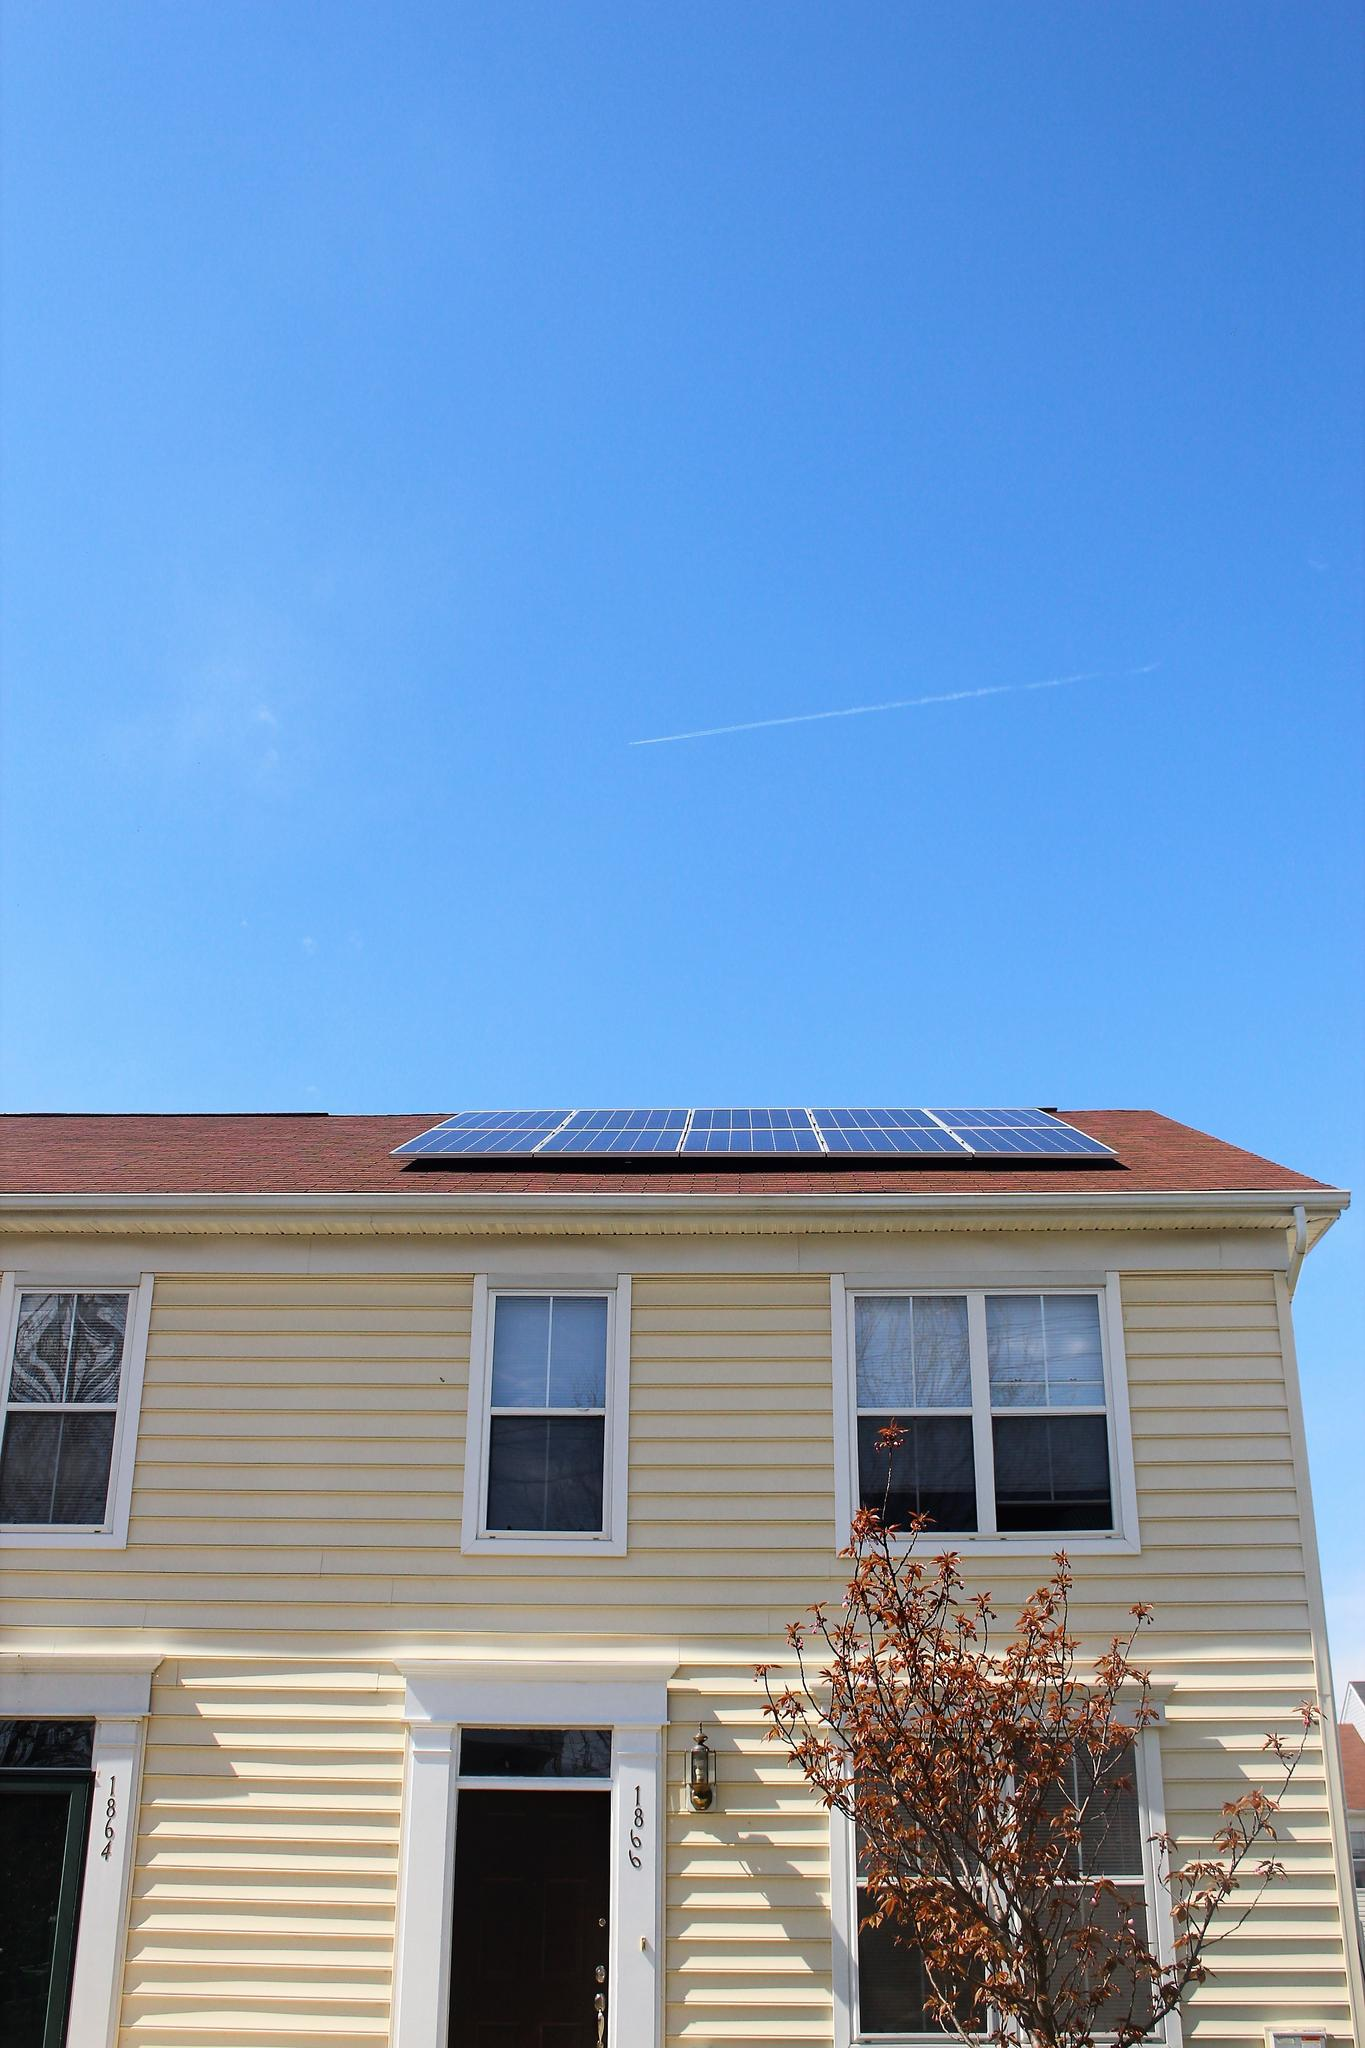 Ipsun Solar Profile And Reviews 2020 Energysage